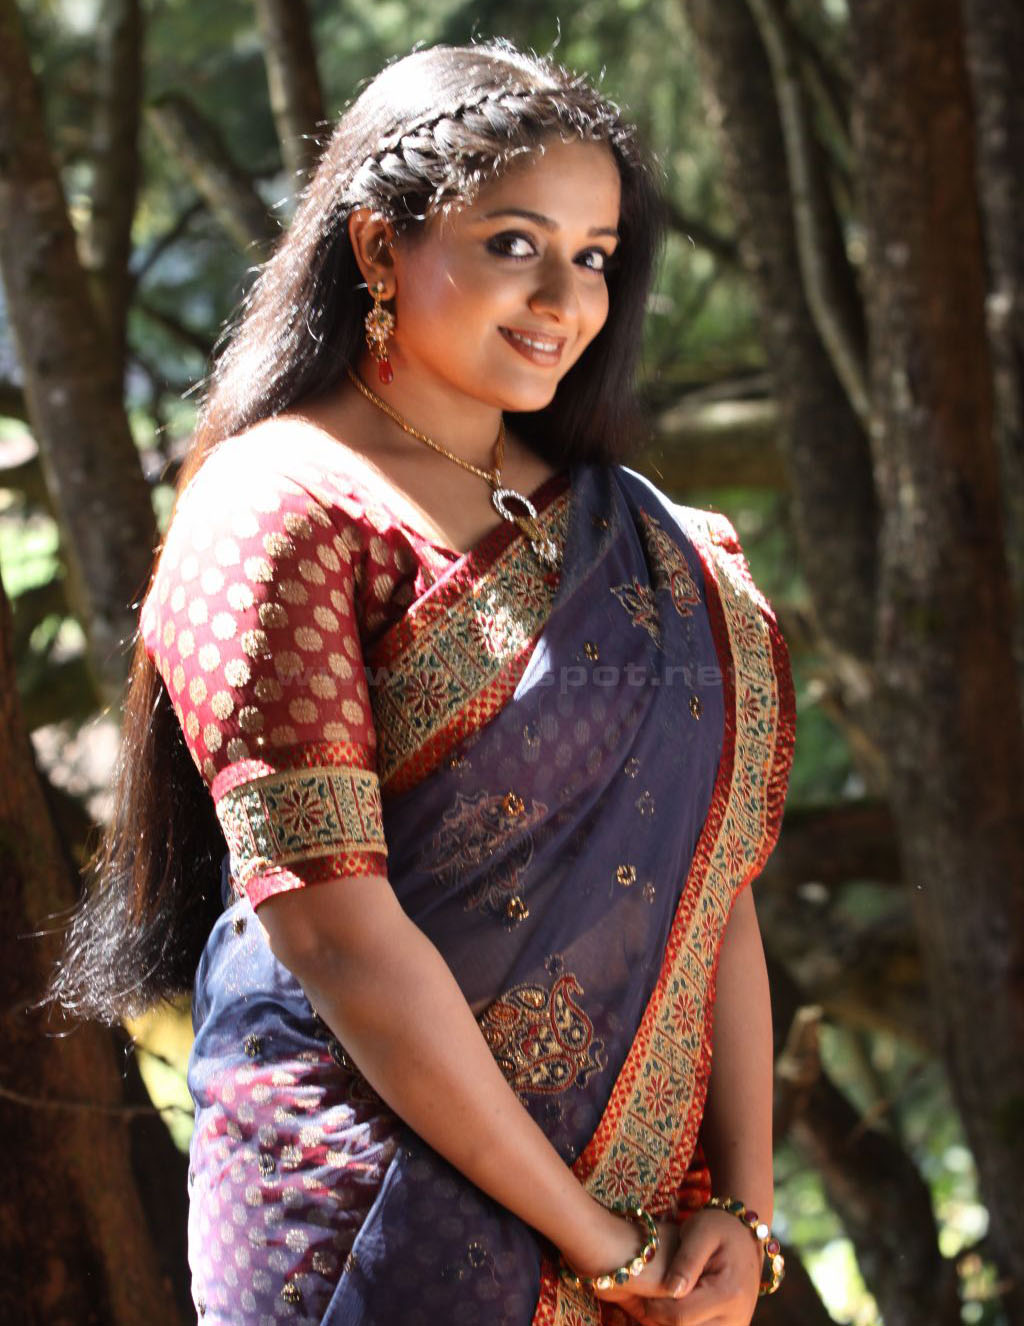 Ngaceng a mas brow hot kavya madhavan in malayalam movie china town hot kavya madhavan in malayalam movie china town altavistaventures Gallery